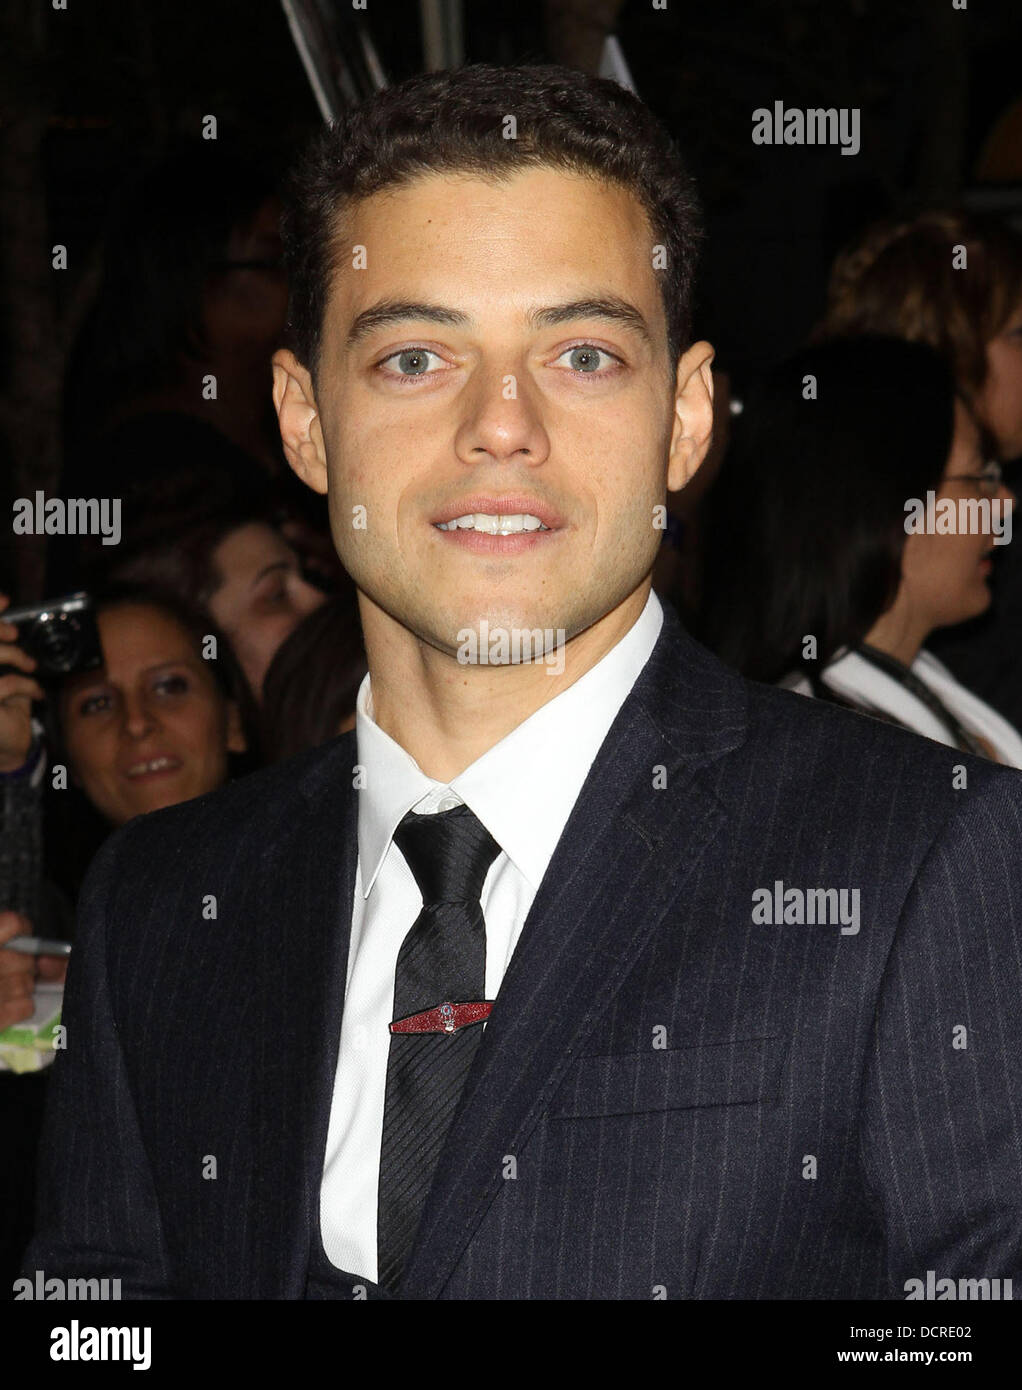 Rami Malek The Twilight Saga: Breaking Dawn - Part 1 World Premiere Stock  Photo - Alamy